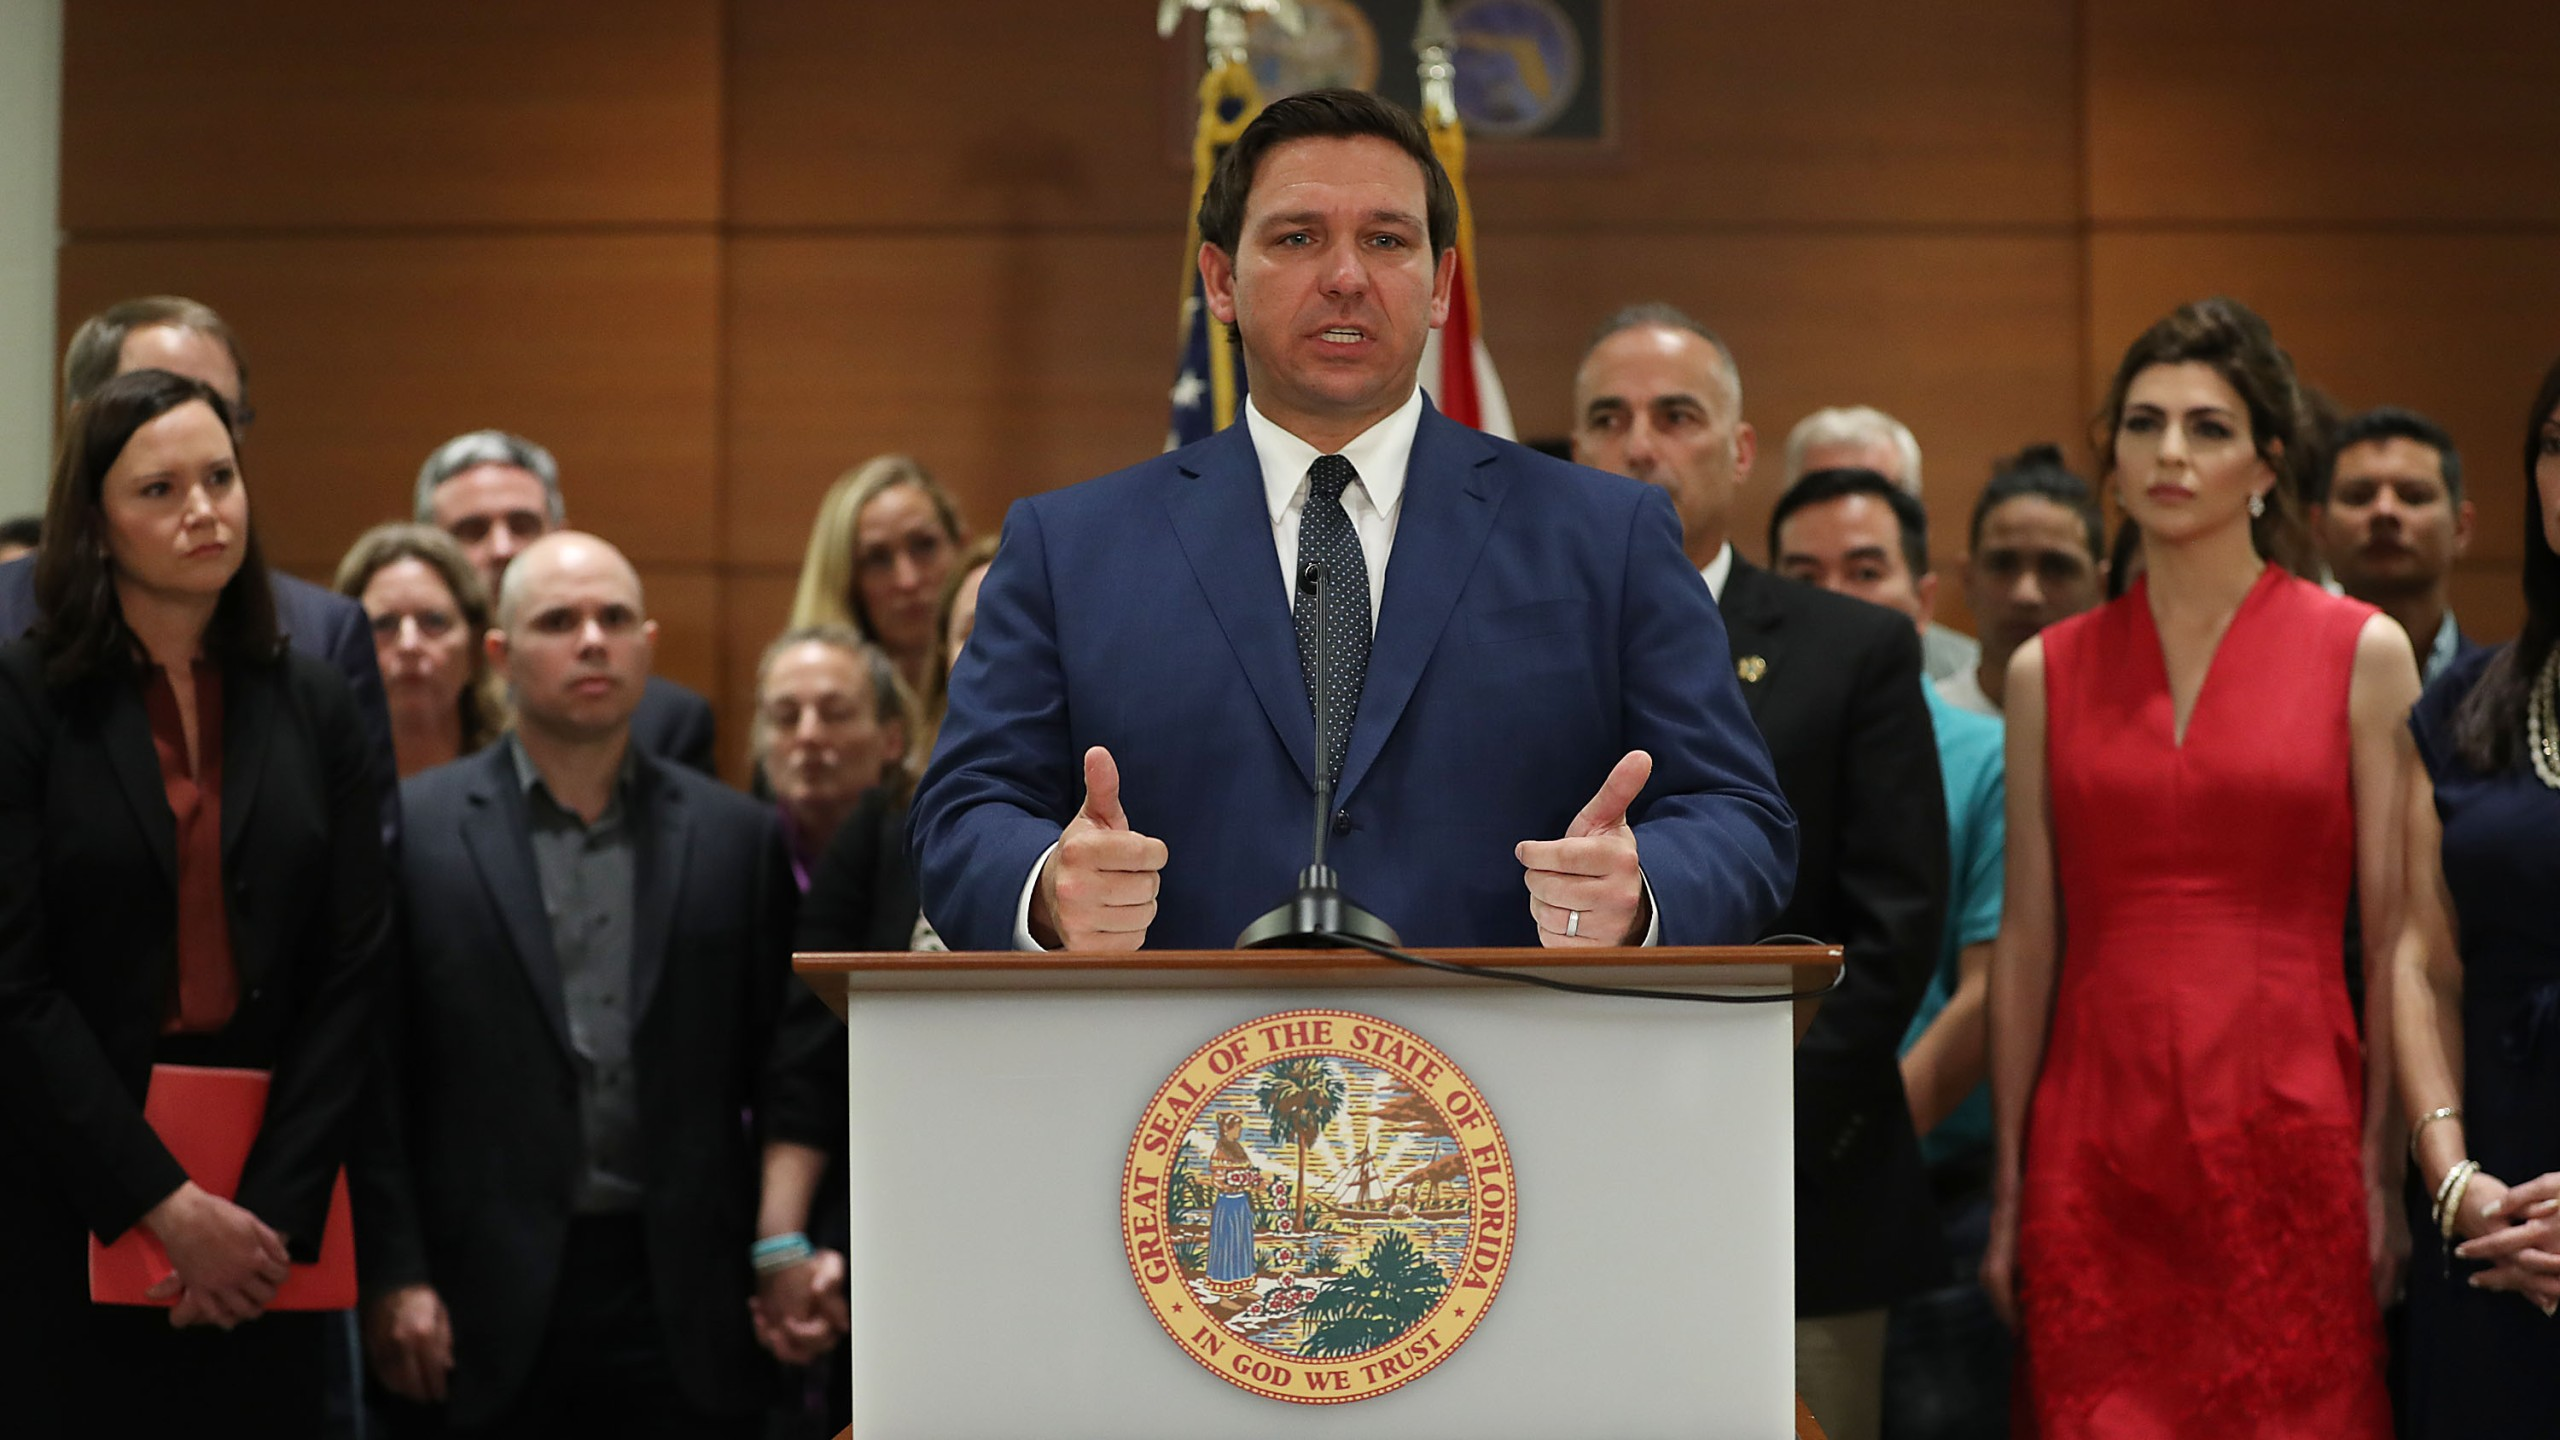 Gov. Ron DeSantis announces that he is ordering a statewide grand jury investigation into how school districts in the state handle student security on Feb. 13, 2019, in Fort Lauderdale. (Credit: Joe Raedle/Getty Images)